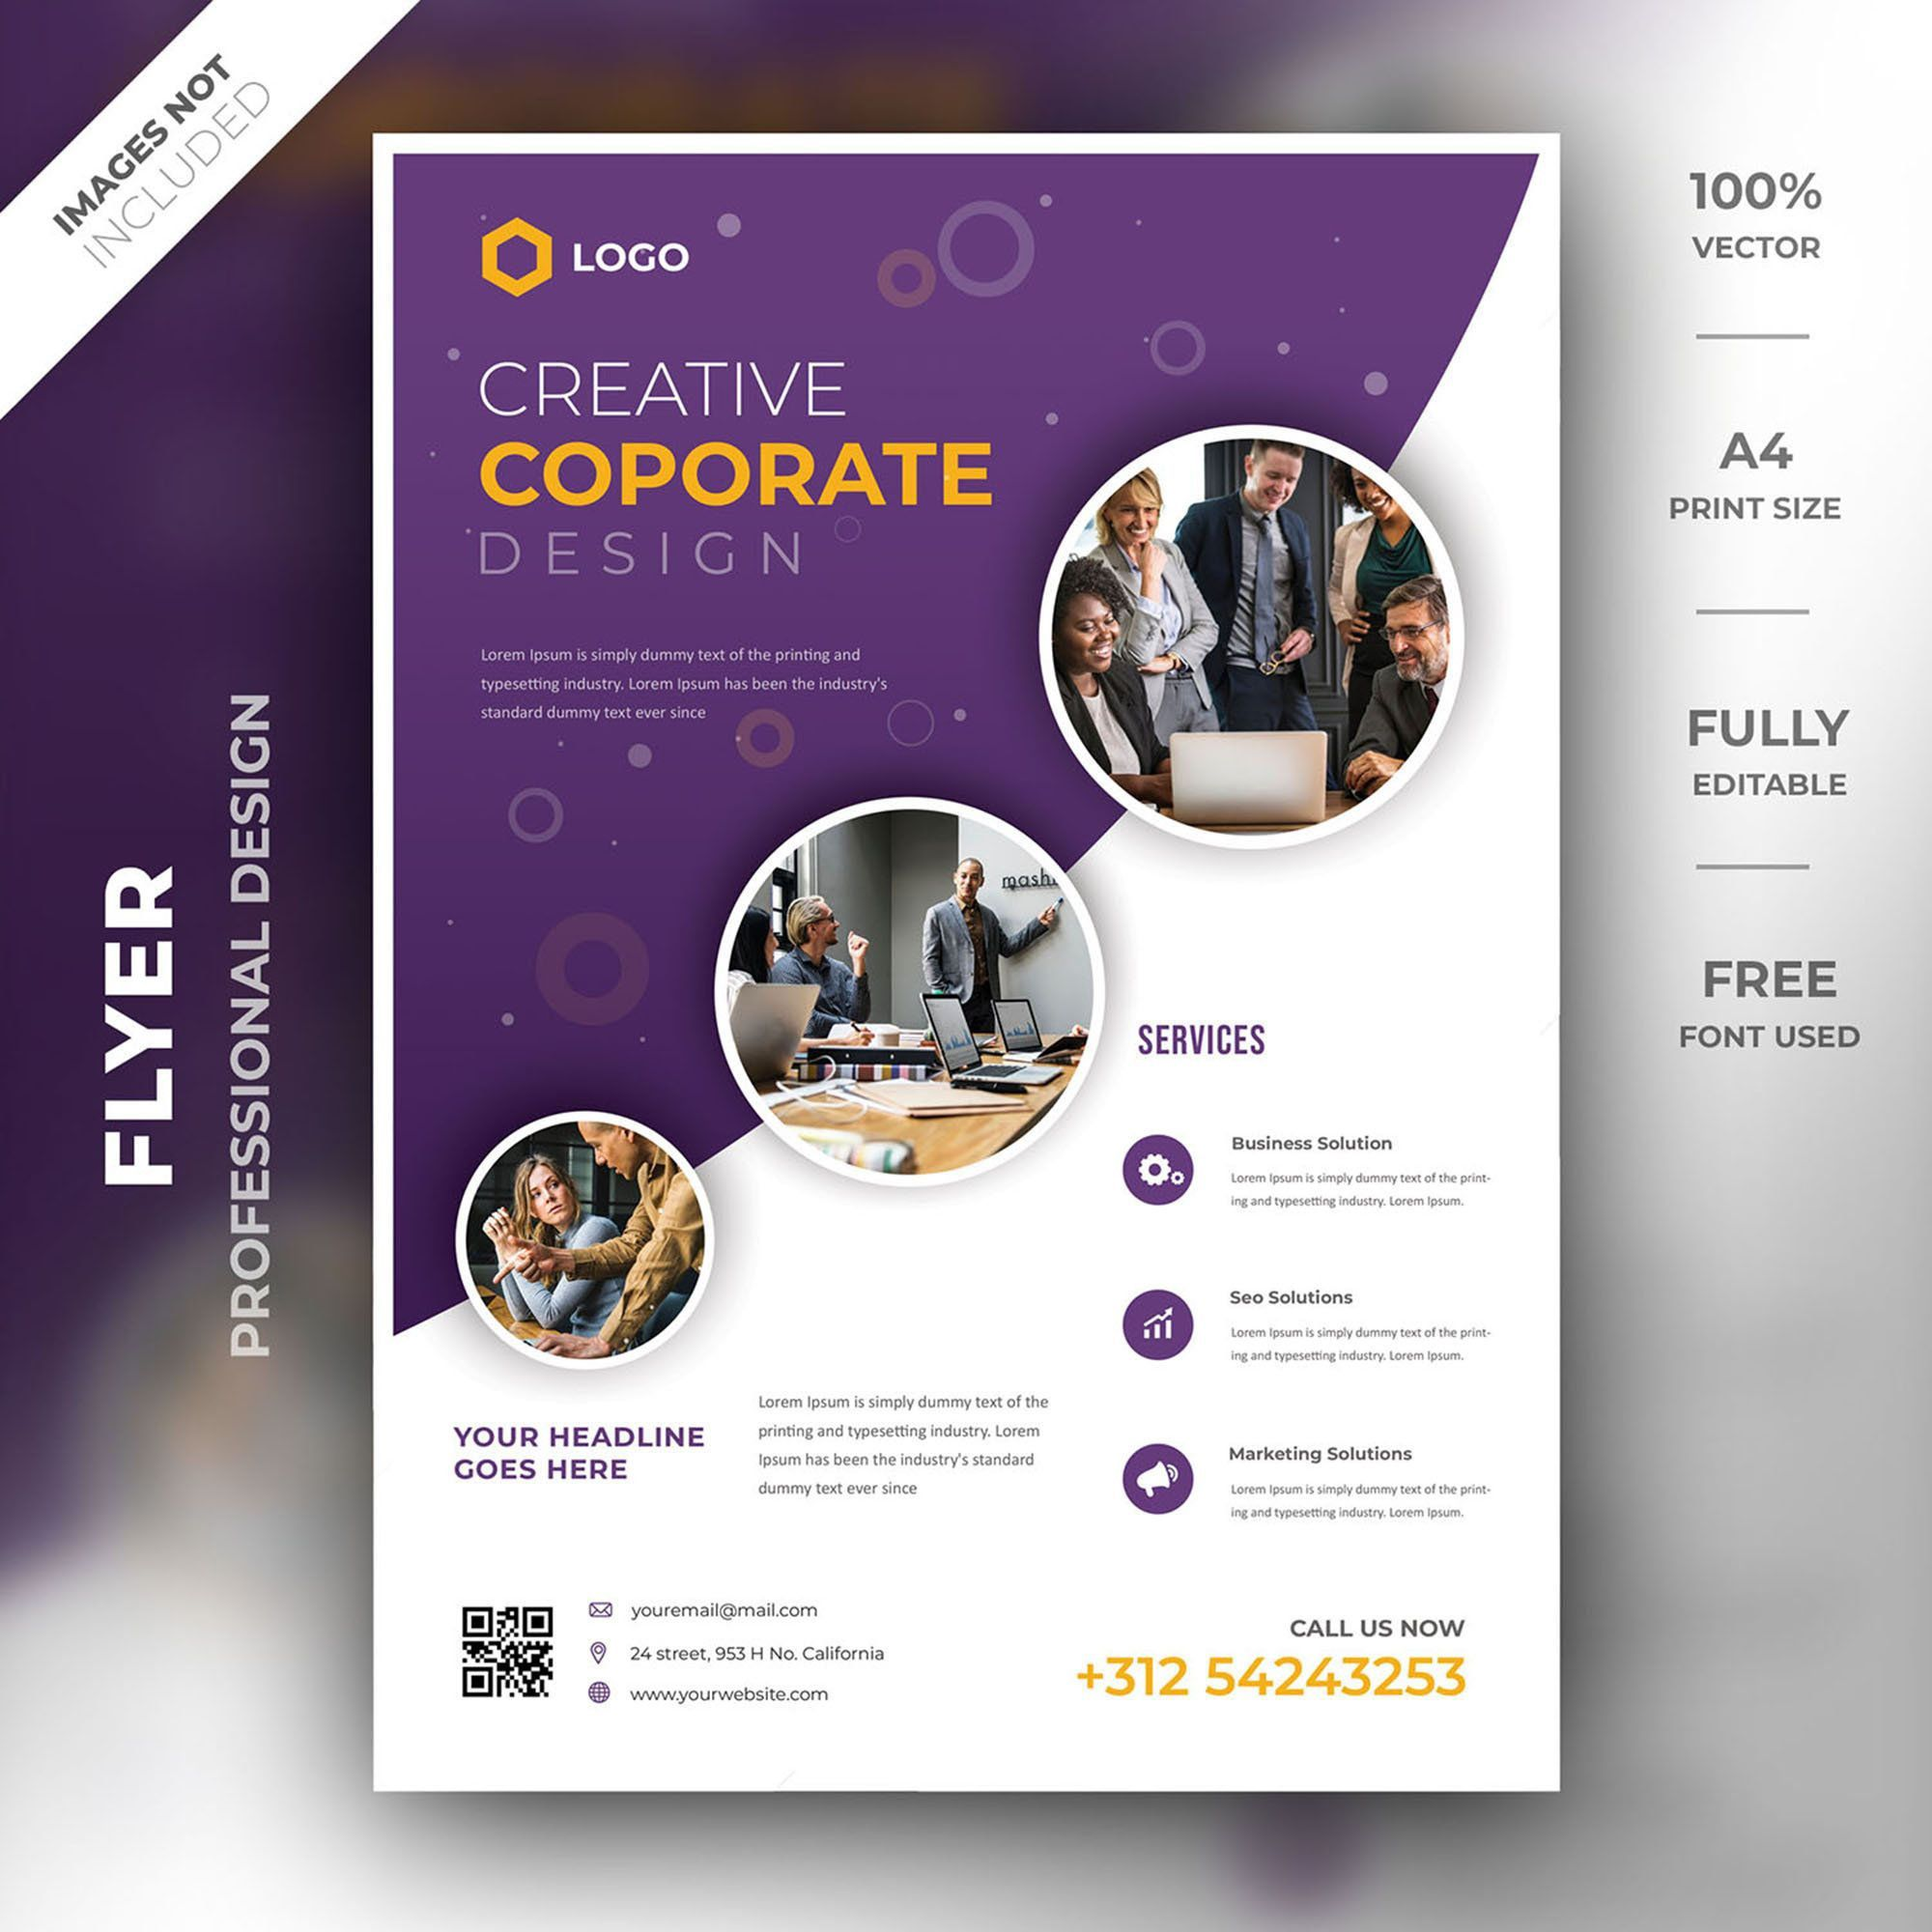 000 Stunning Brochure Template Photoshop Cs6 Free Download Highest Clarity Full